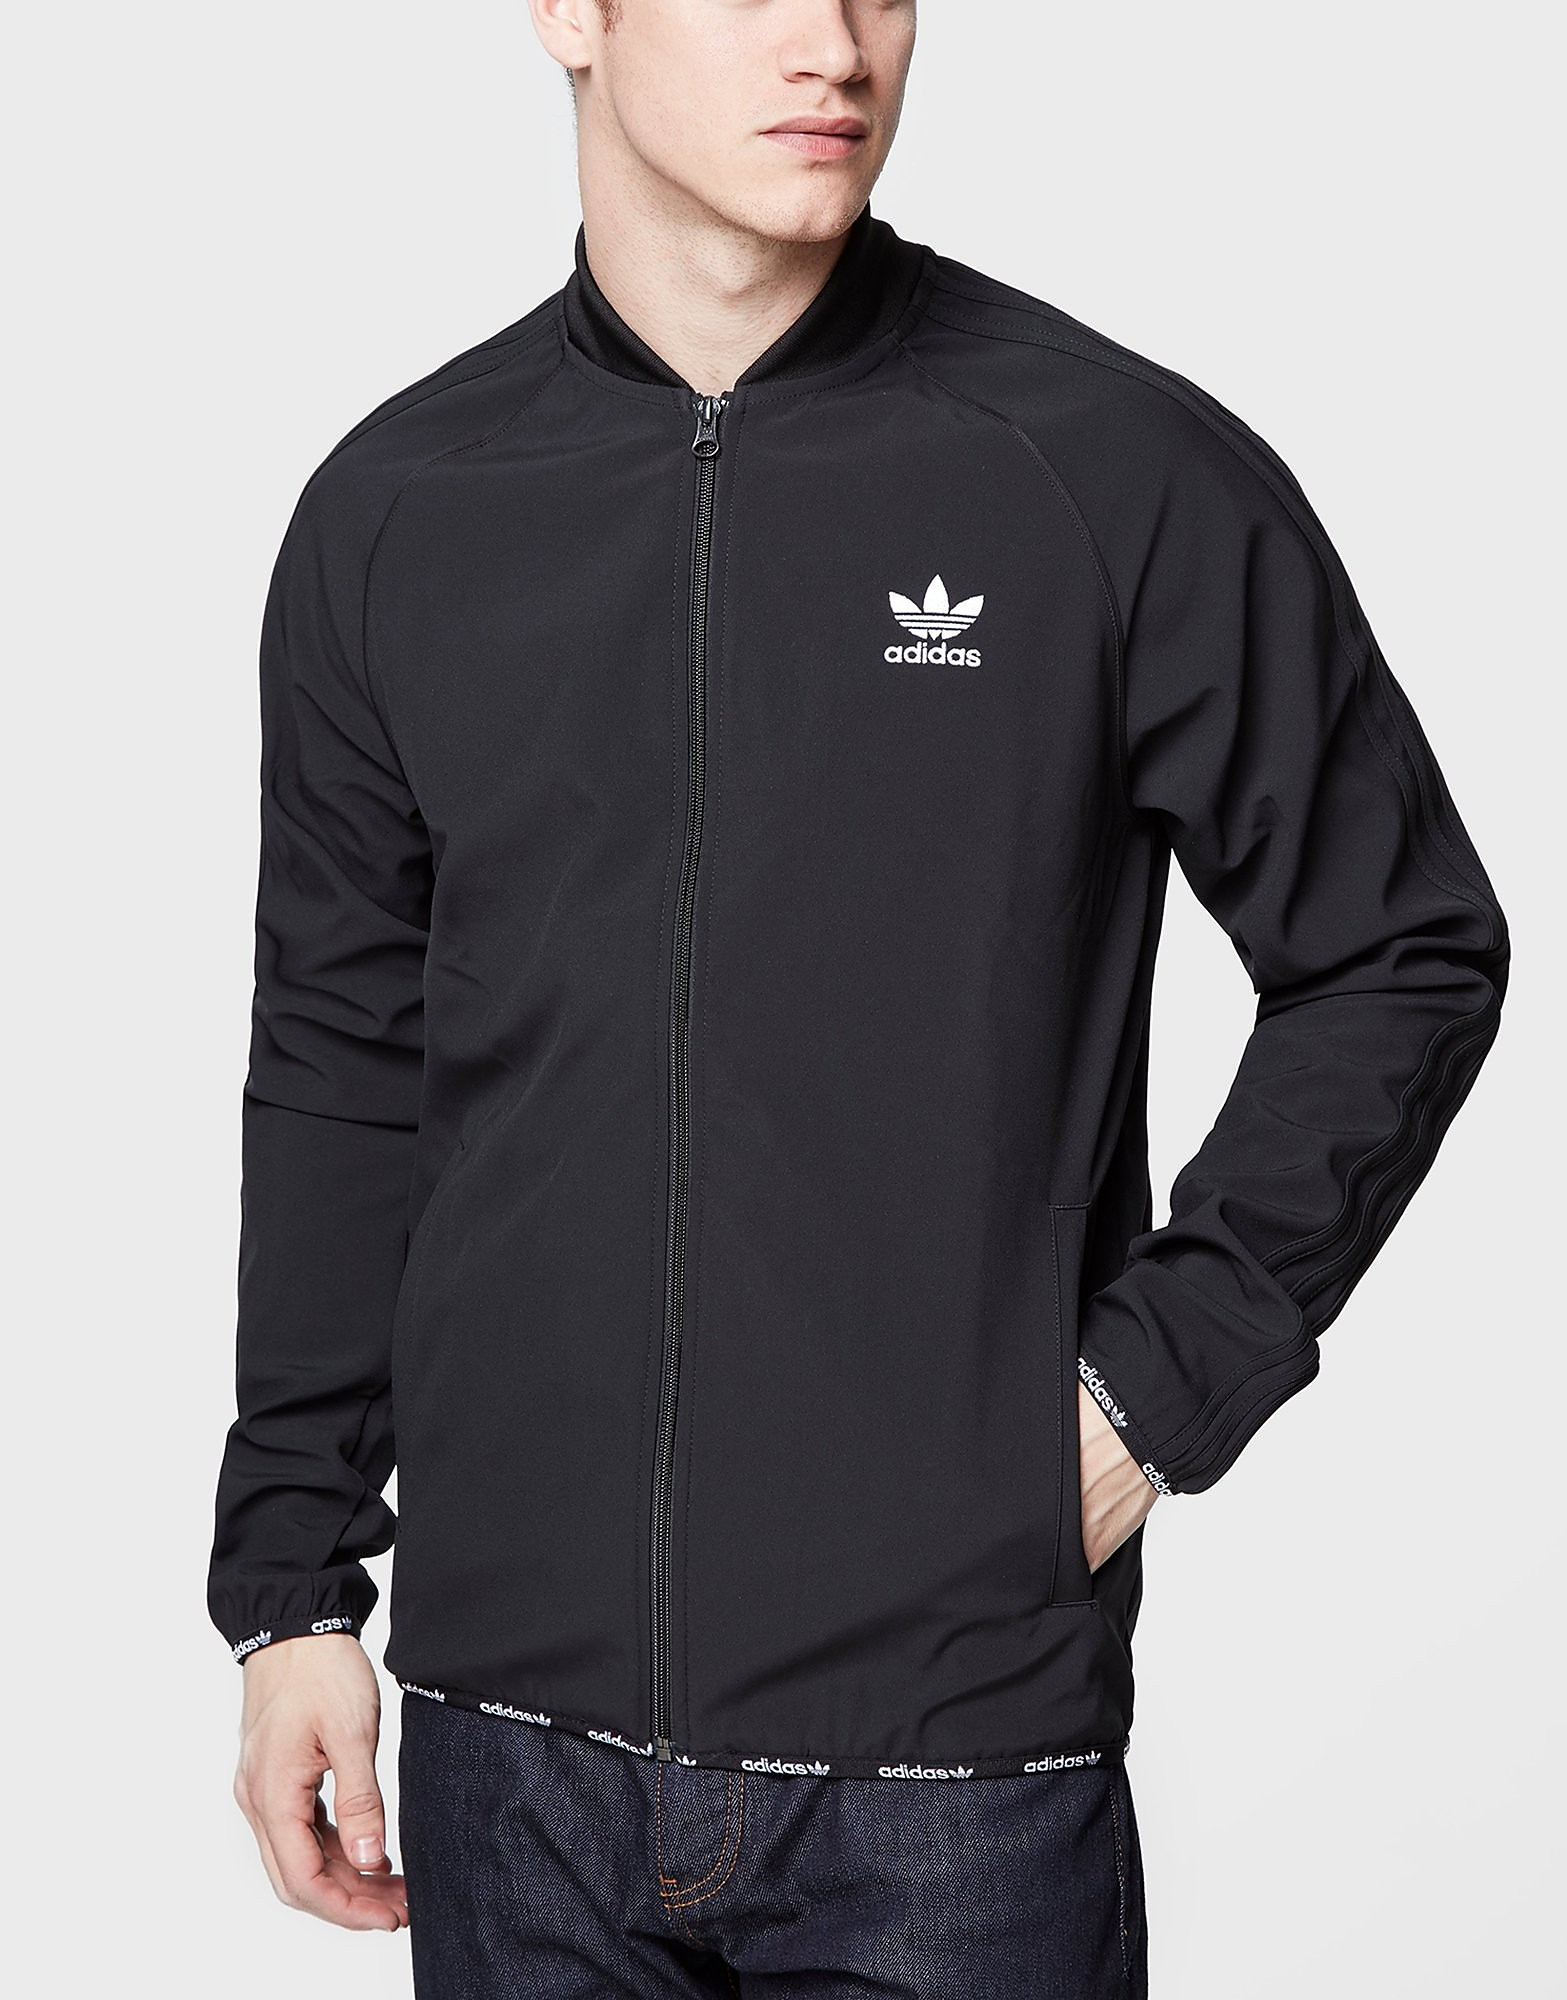 adidas Originals Superstar 2.0 Track Top  Black Black